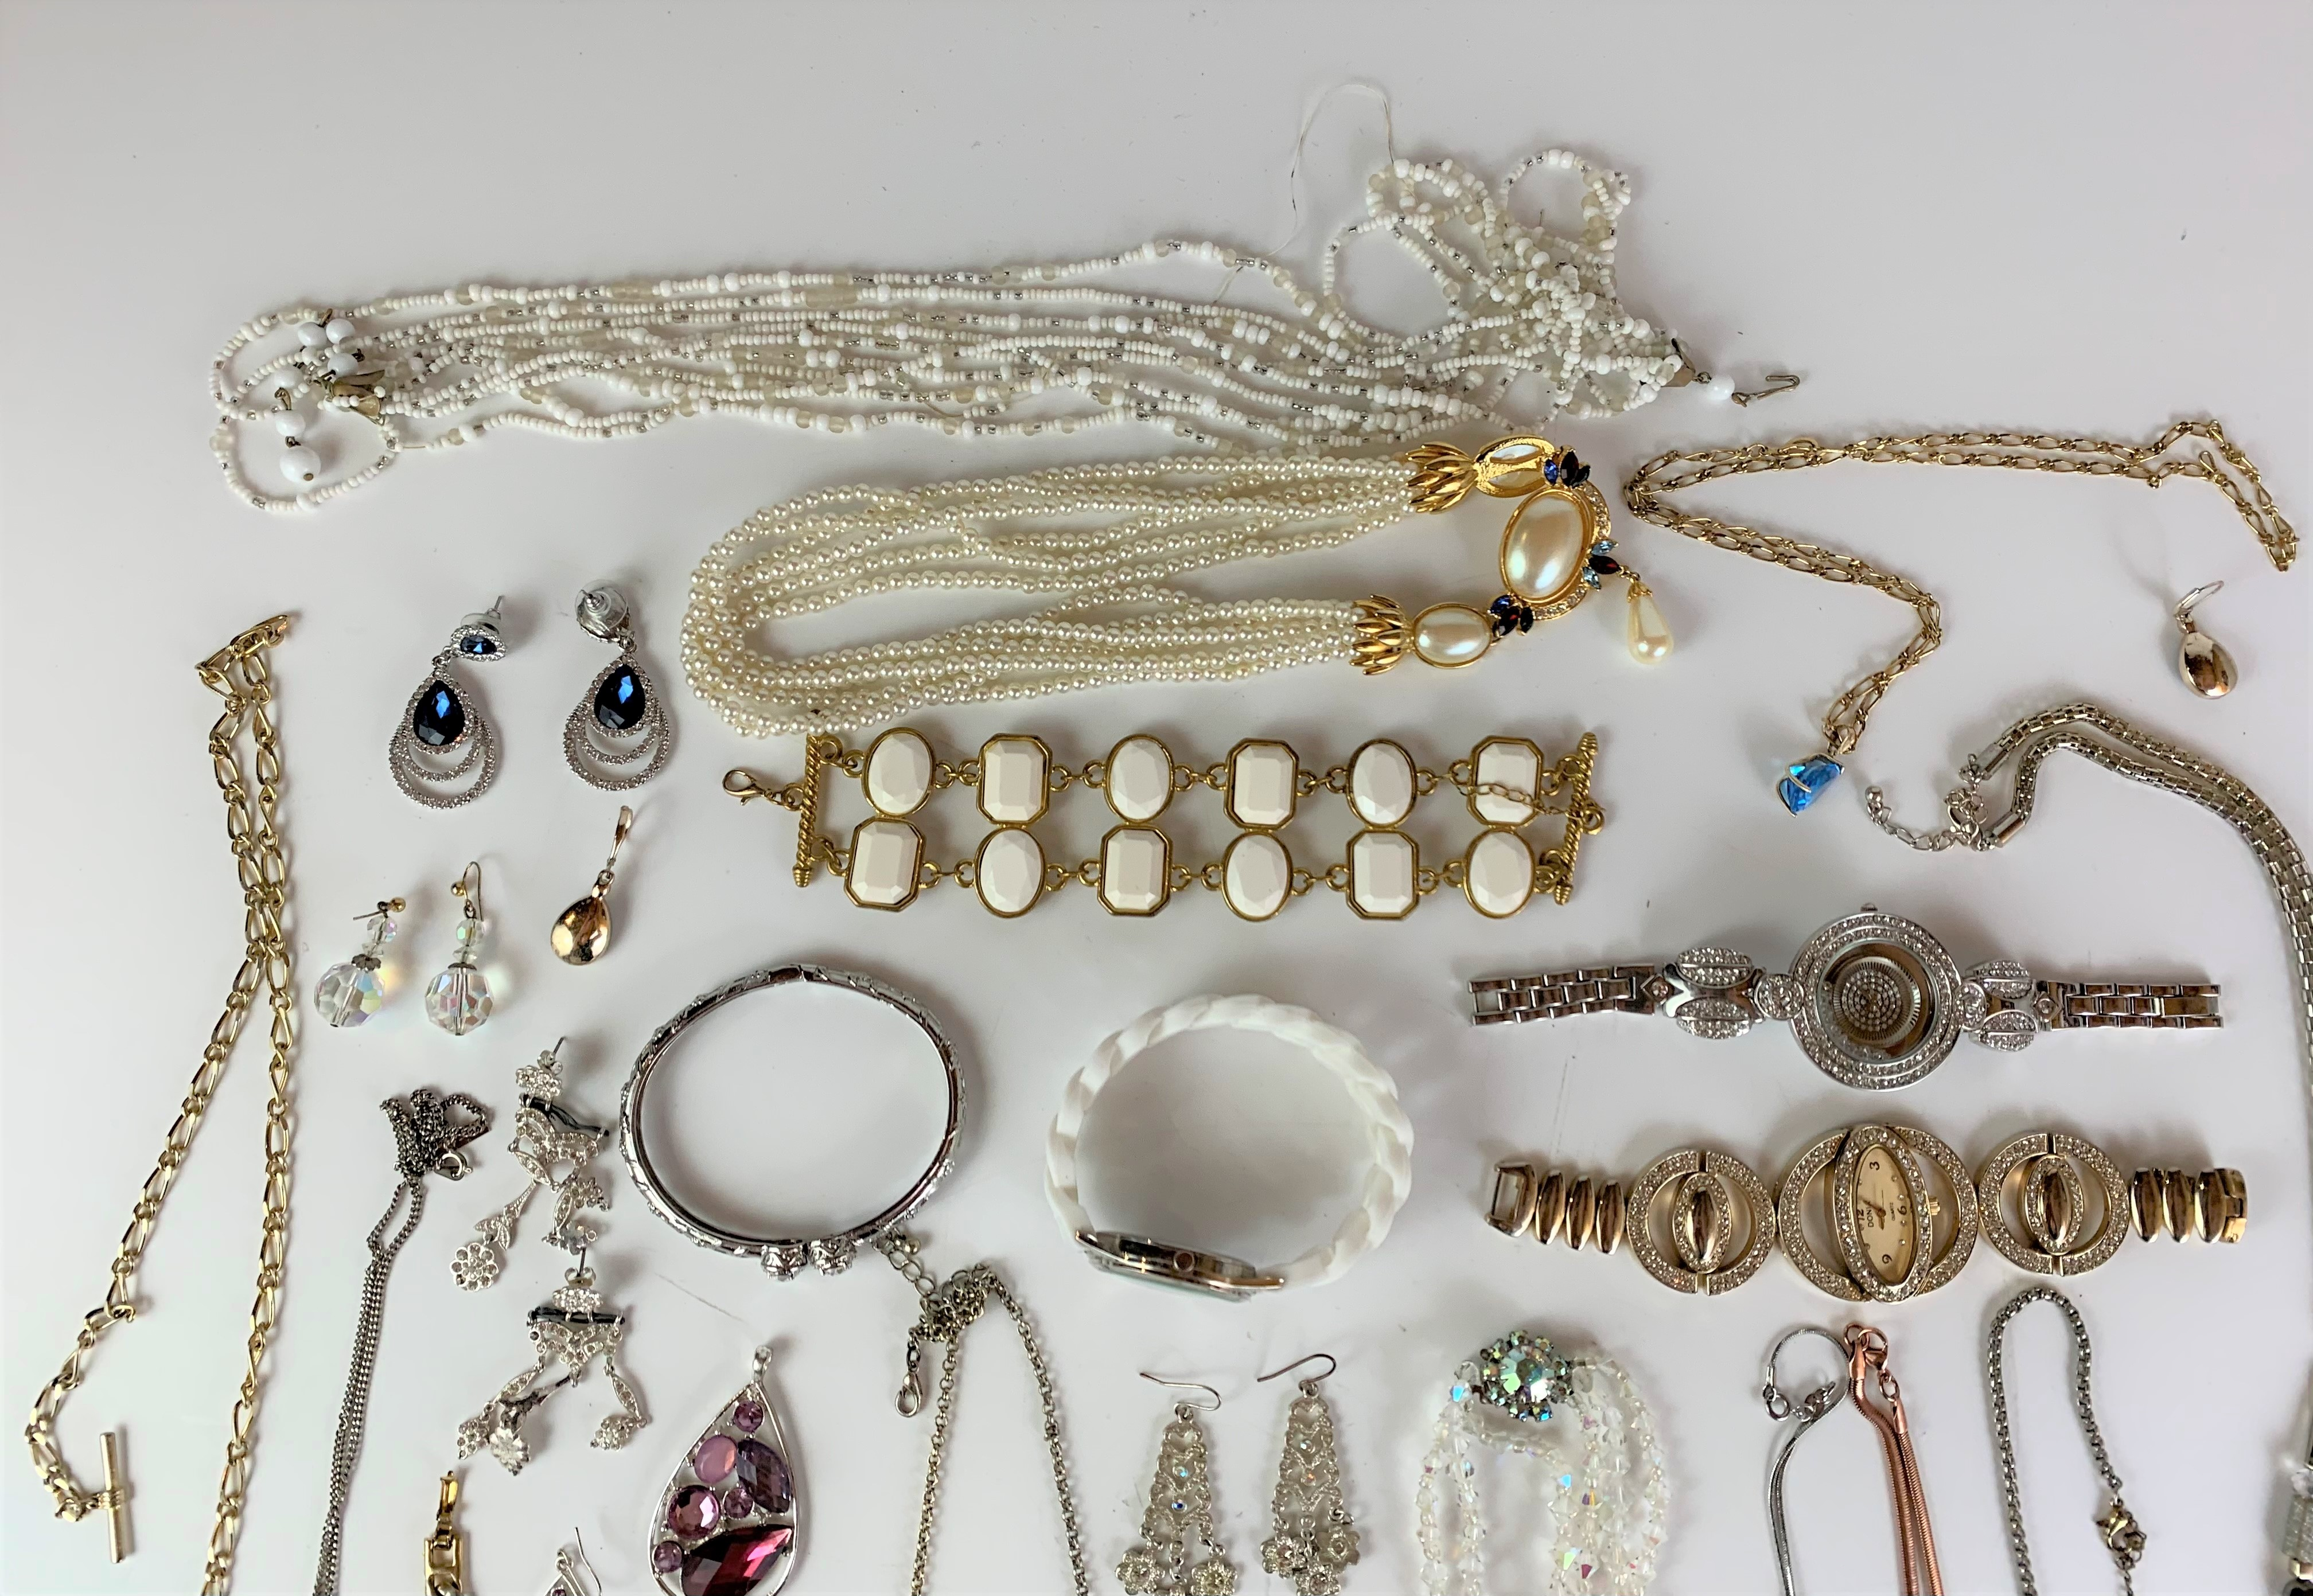 Large bag of assorted dress jewellery including necklaces, bracelets, earrings, etc. - Image 6 of 6